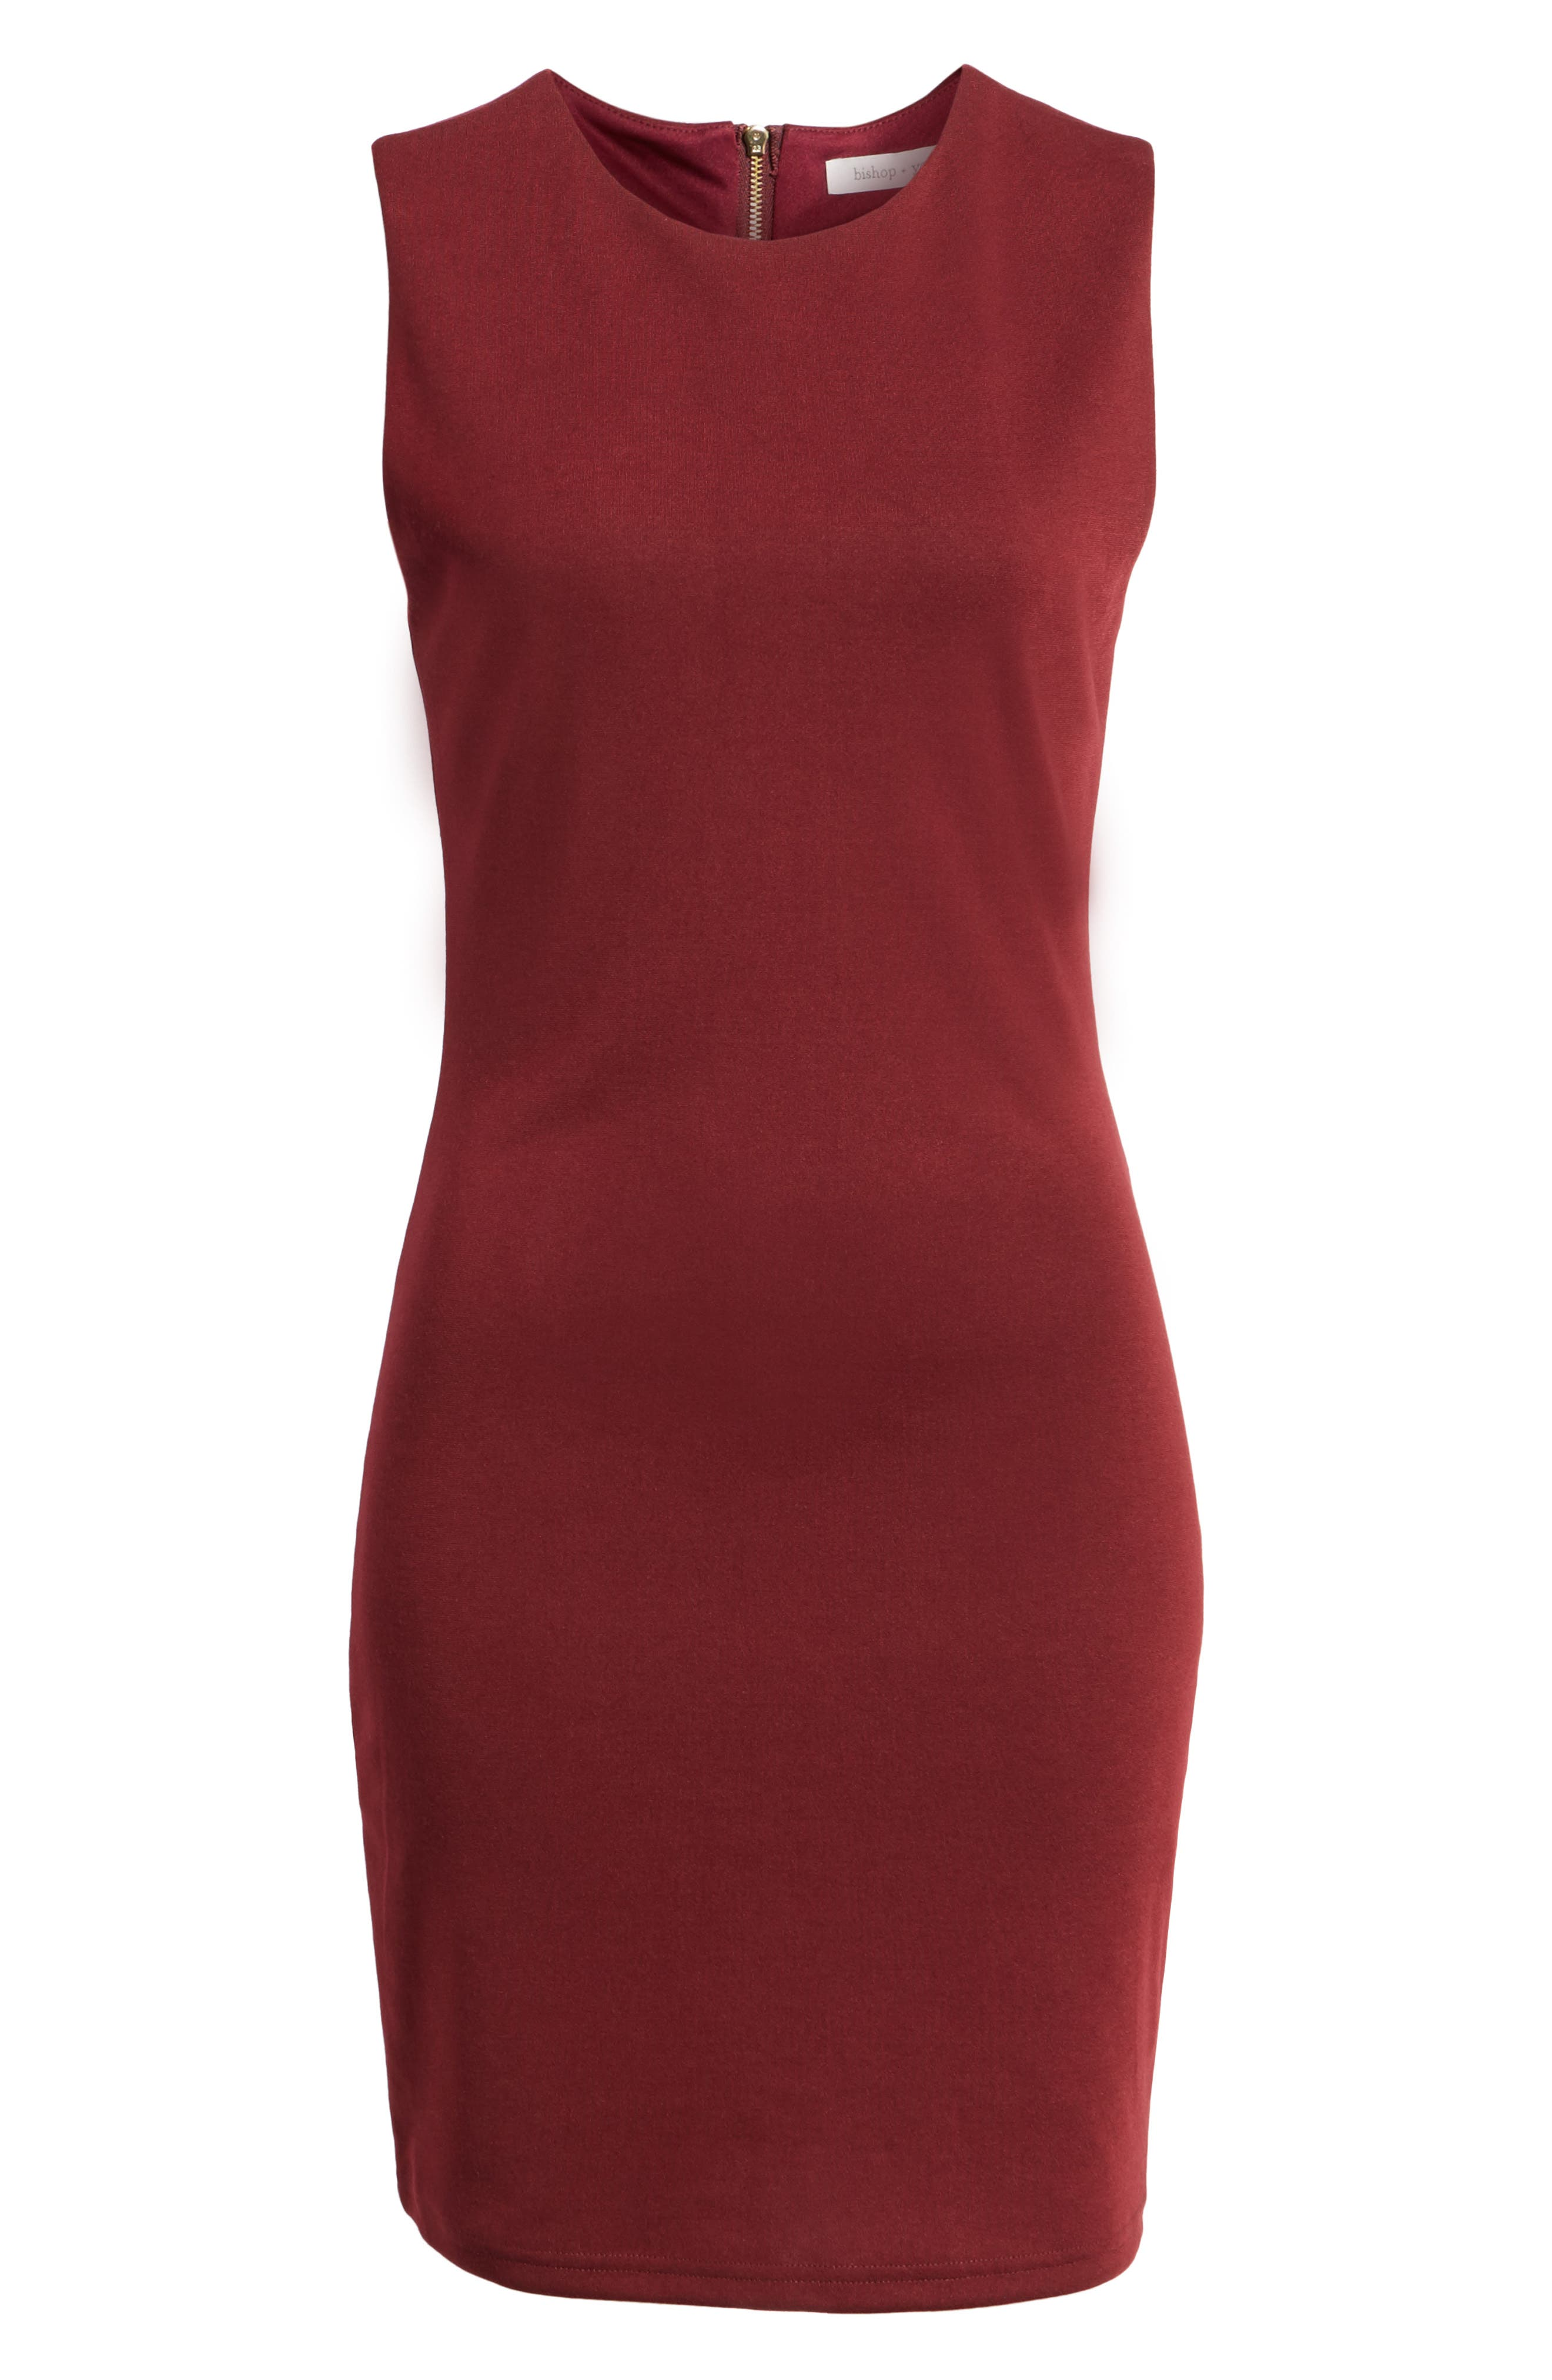 Ponte Knit Sheath Dress,                             Alternate thumbnail 6, color,                             934